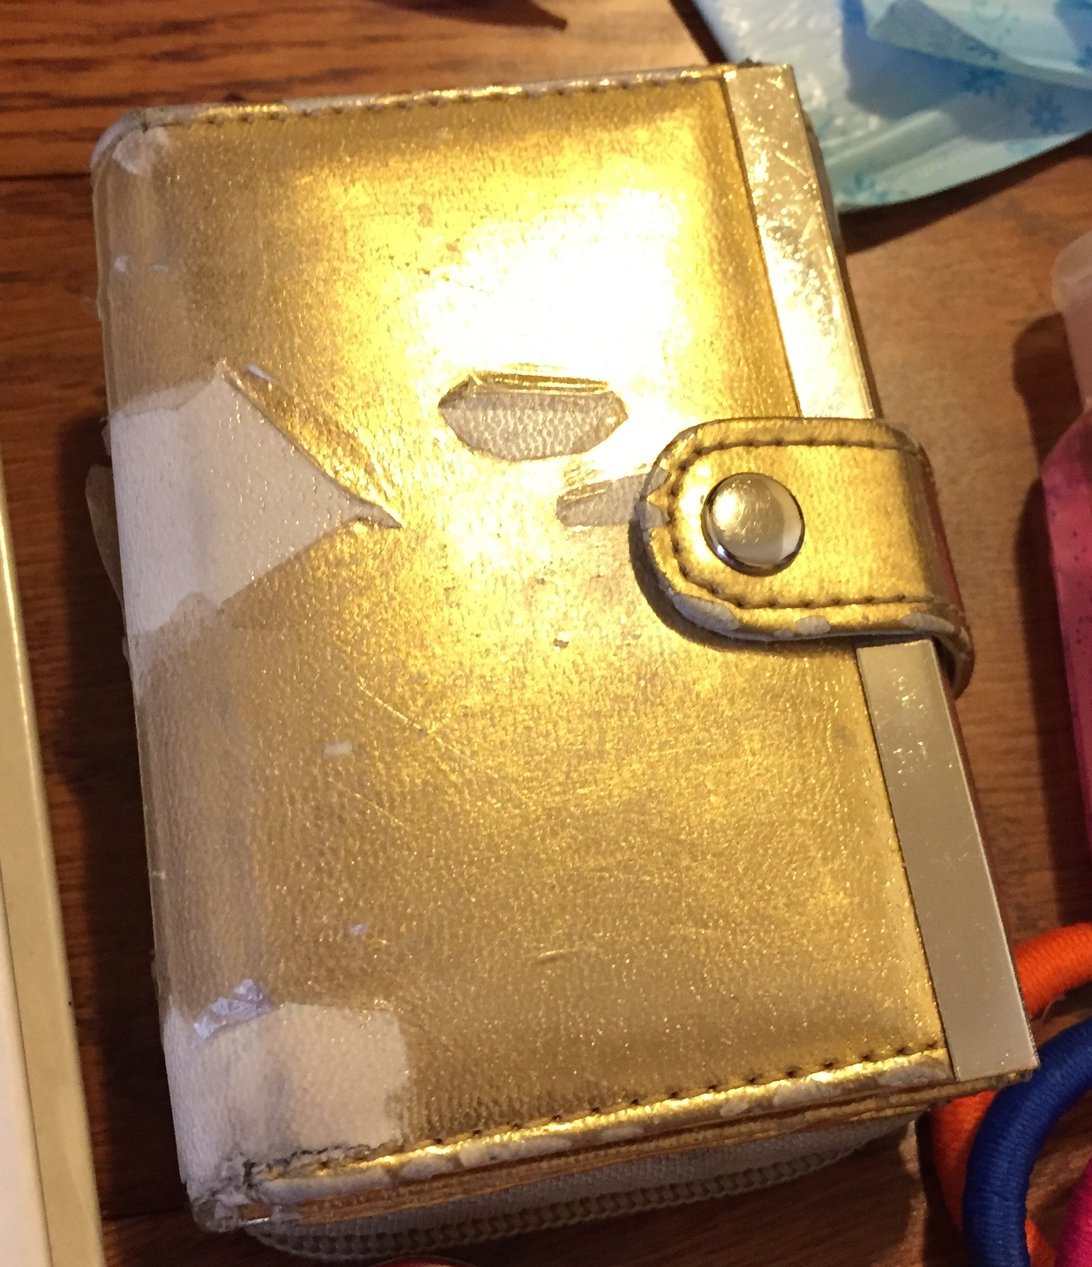 A wallet for carrying around smaller items